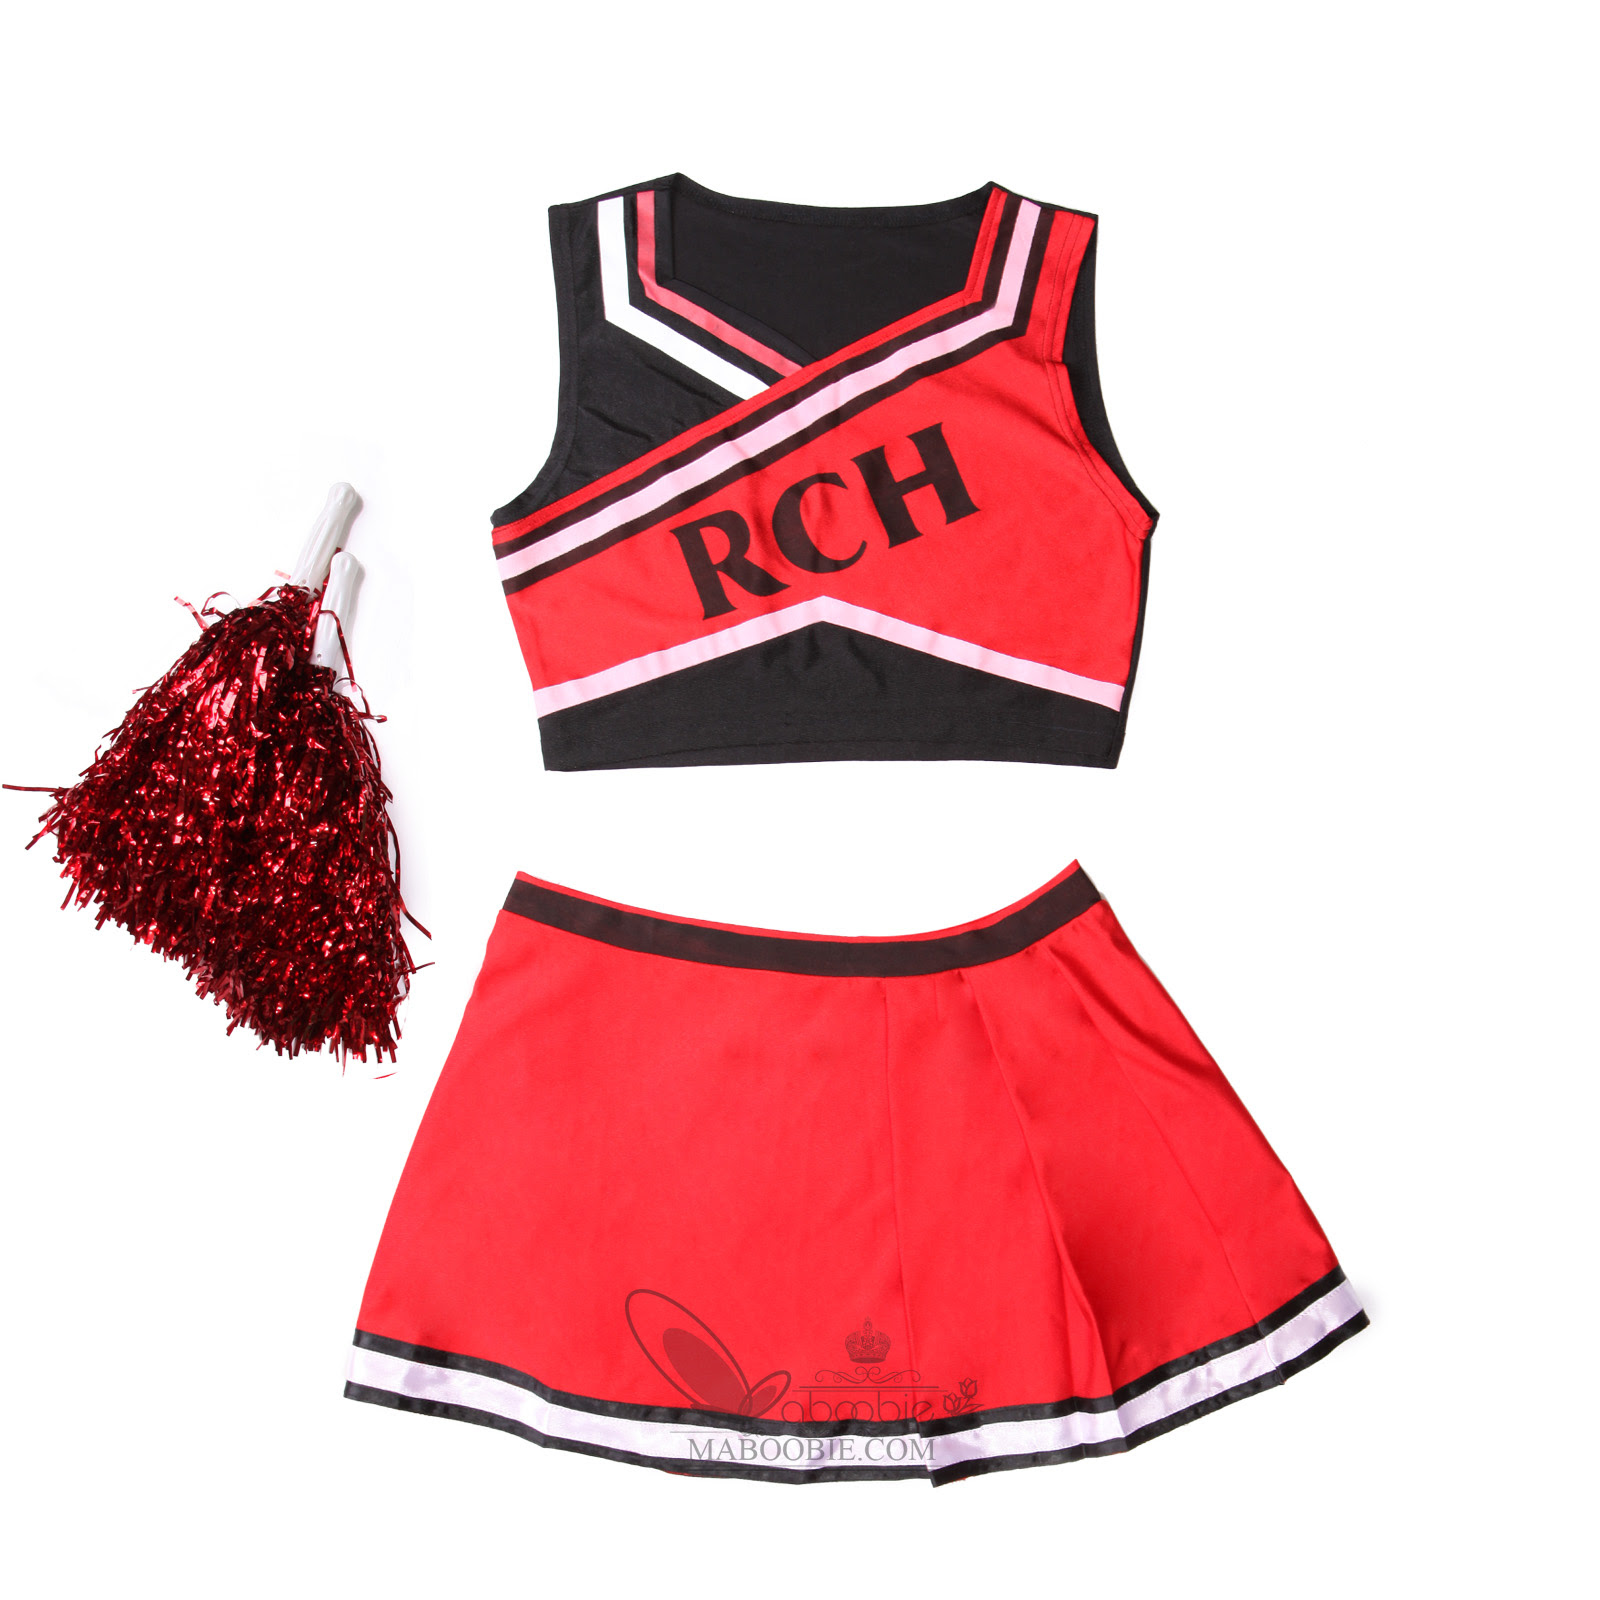 bring it on style cheerleader group costume outfit ladies